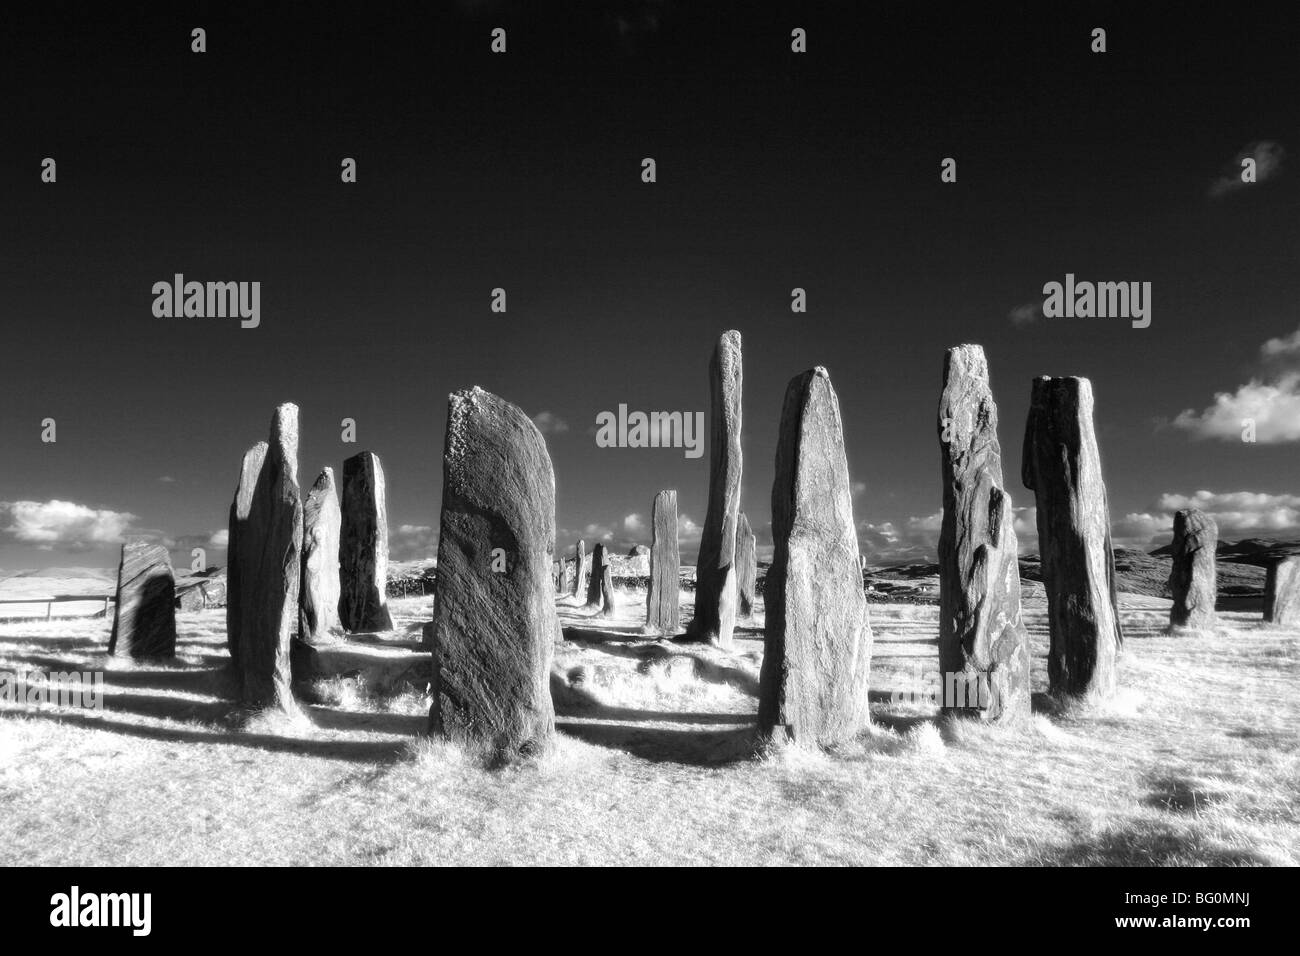 Infrared image of Standing Stones of Callanish, Summer Solstice 2008, Callanish, Isle of Lewis, Outer Hebrides, - Stock Image